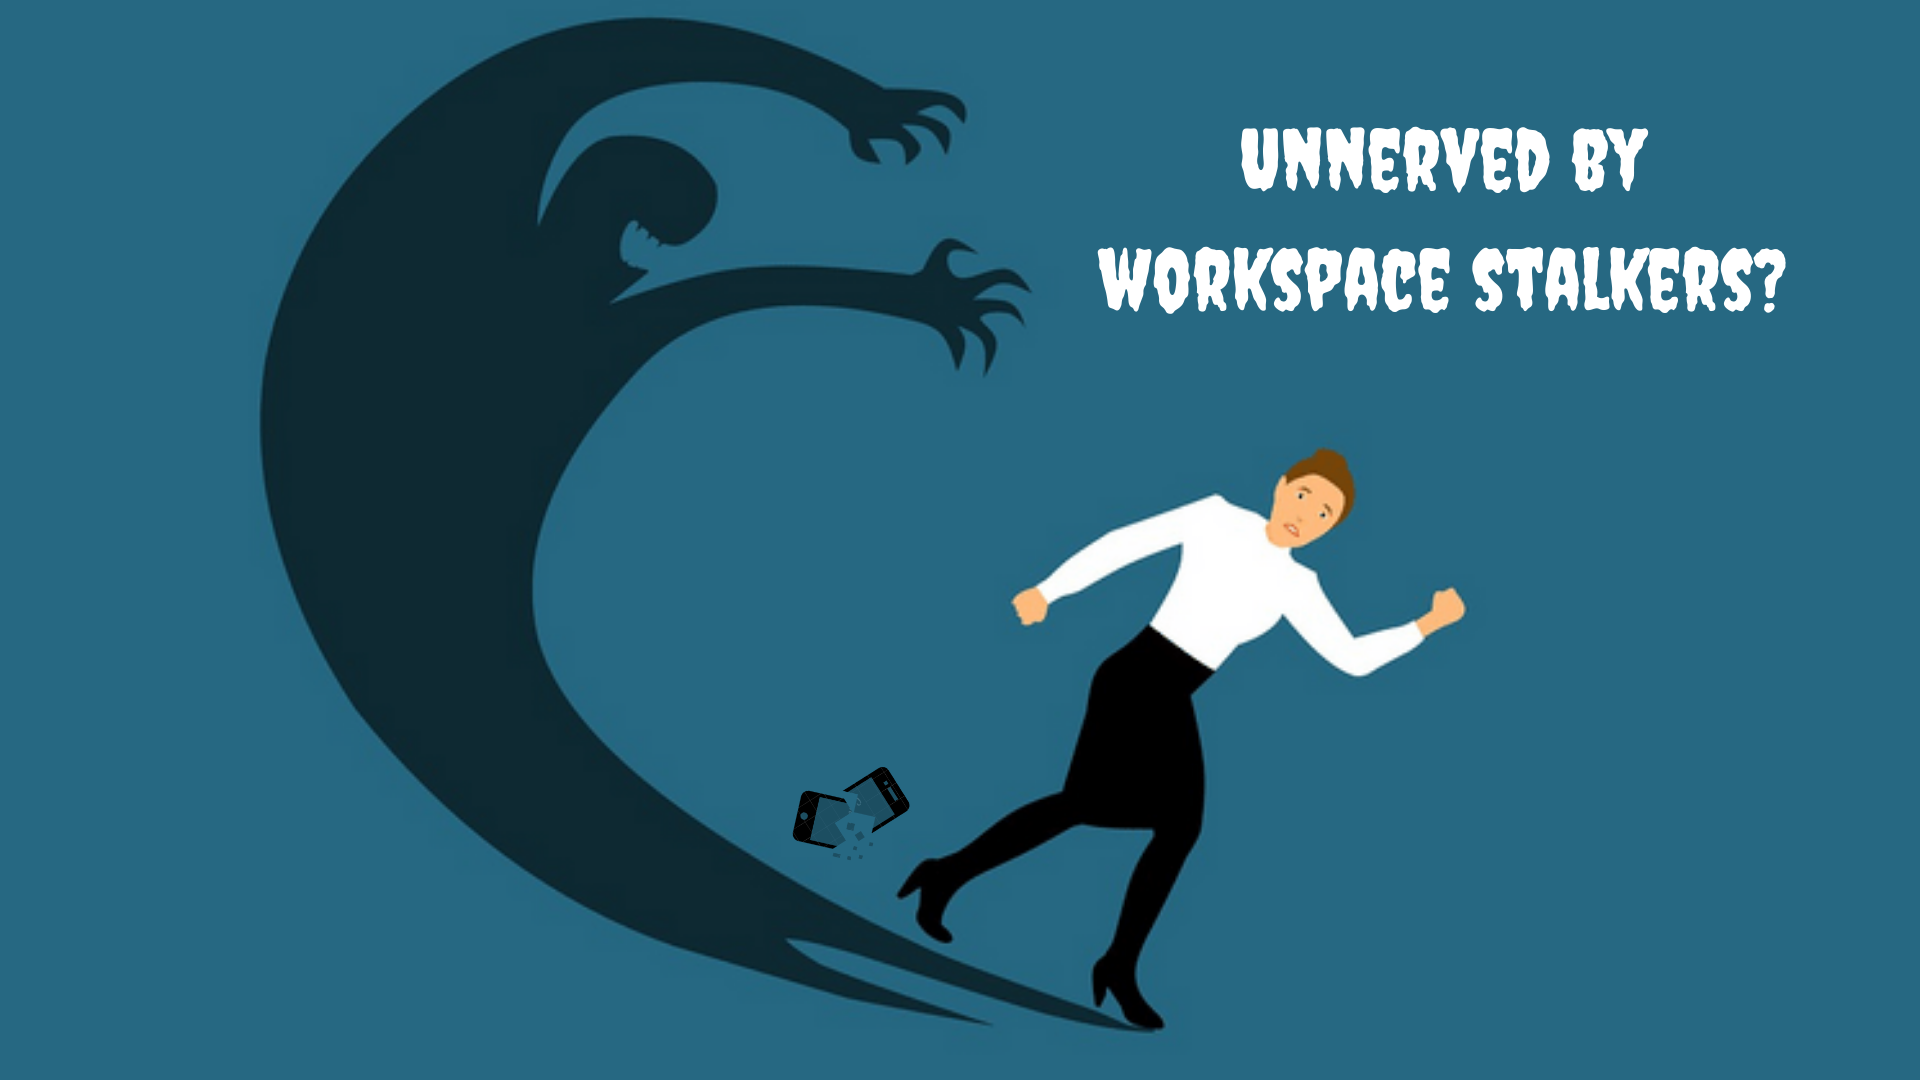 Depiction of workspace stalking- a woman running away from her shadow